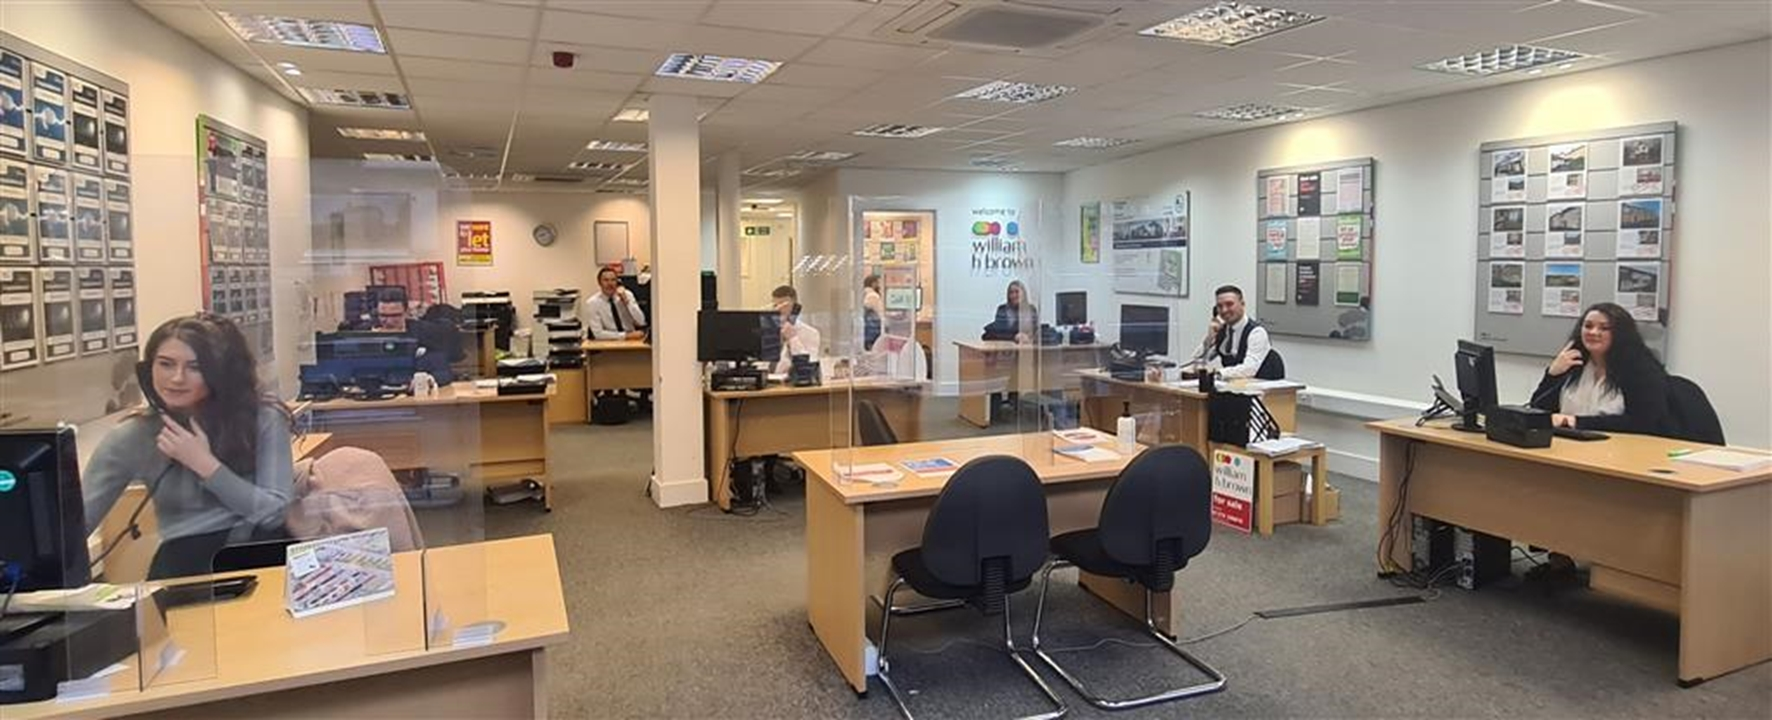 Dedicated Lettings Team - here to offer all of our landlords and buy-to-let investors the best possible service. Come in to meet the team today